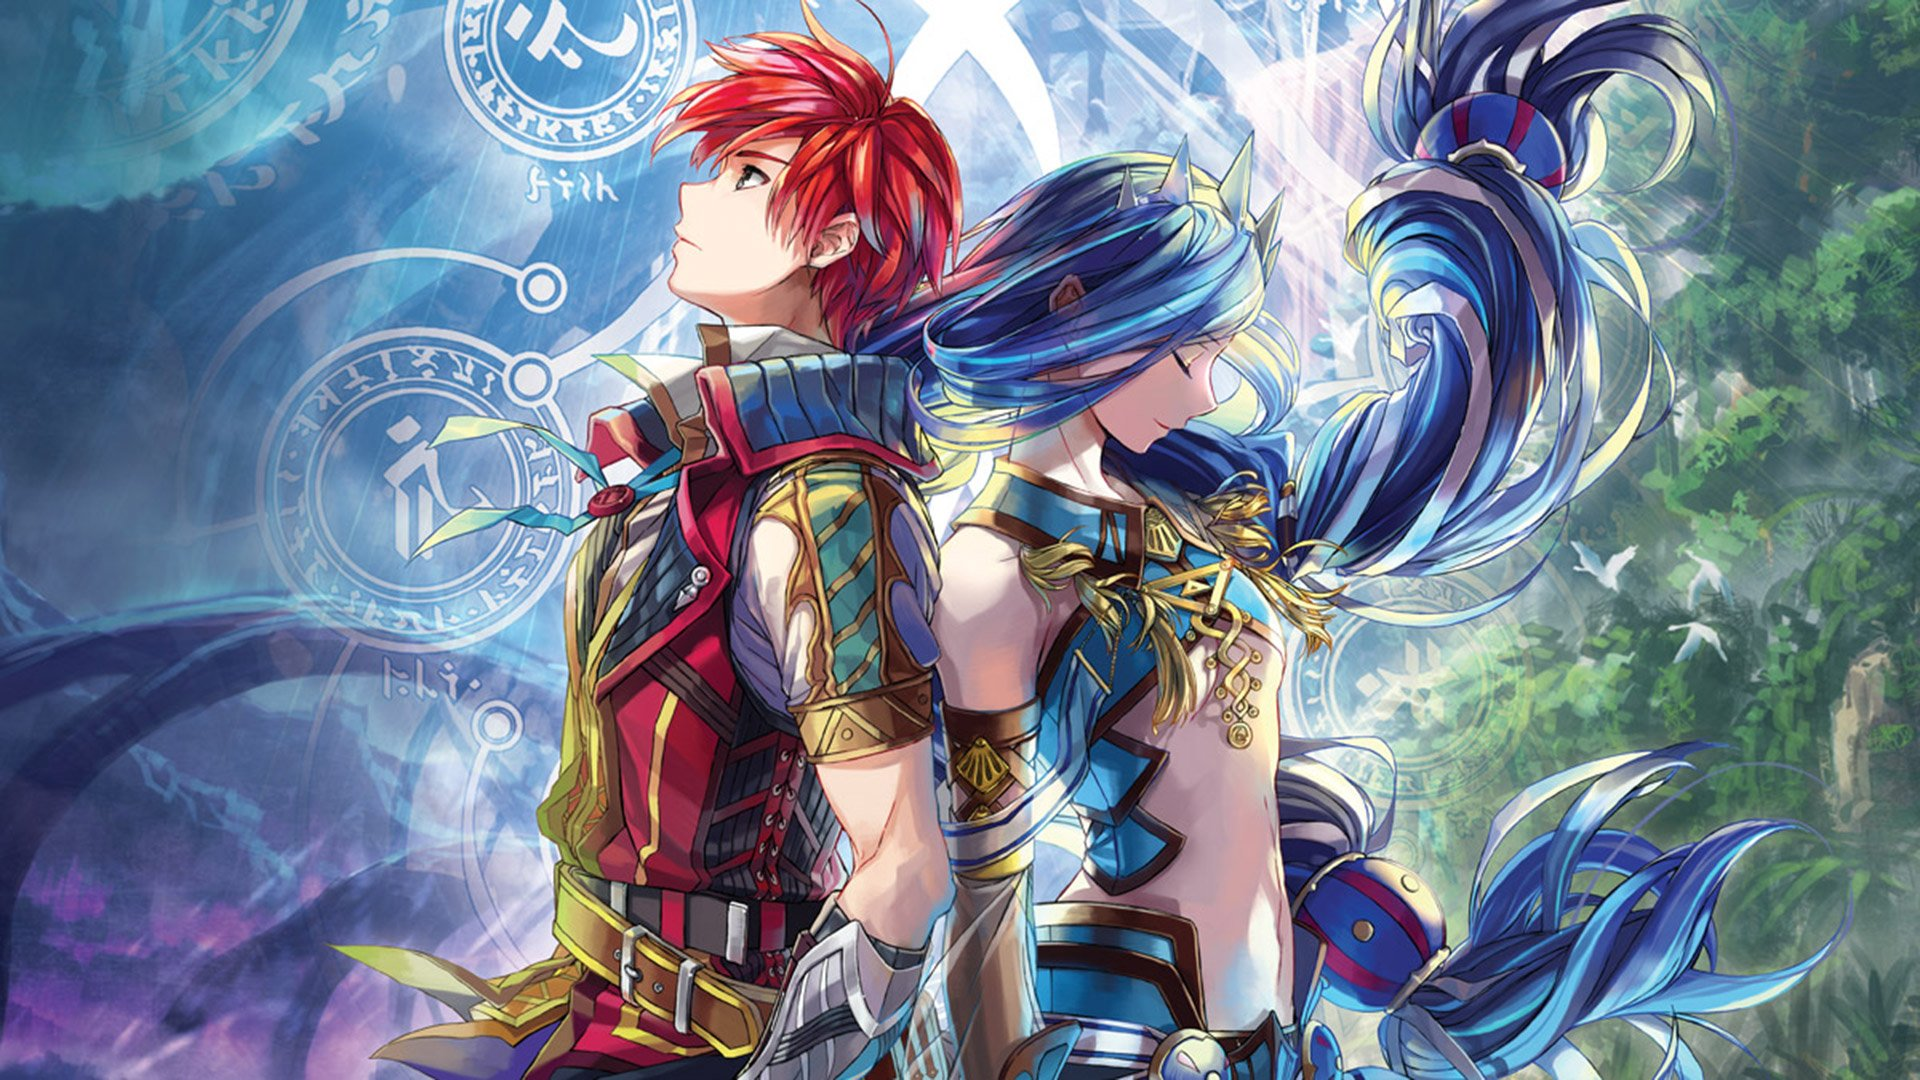 Ys VIII Lacrimosa of Dana Switch Update 1.0.1 Patch Notes